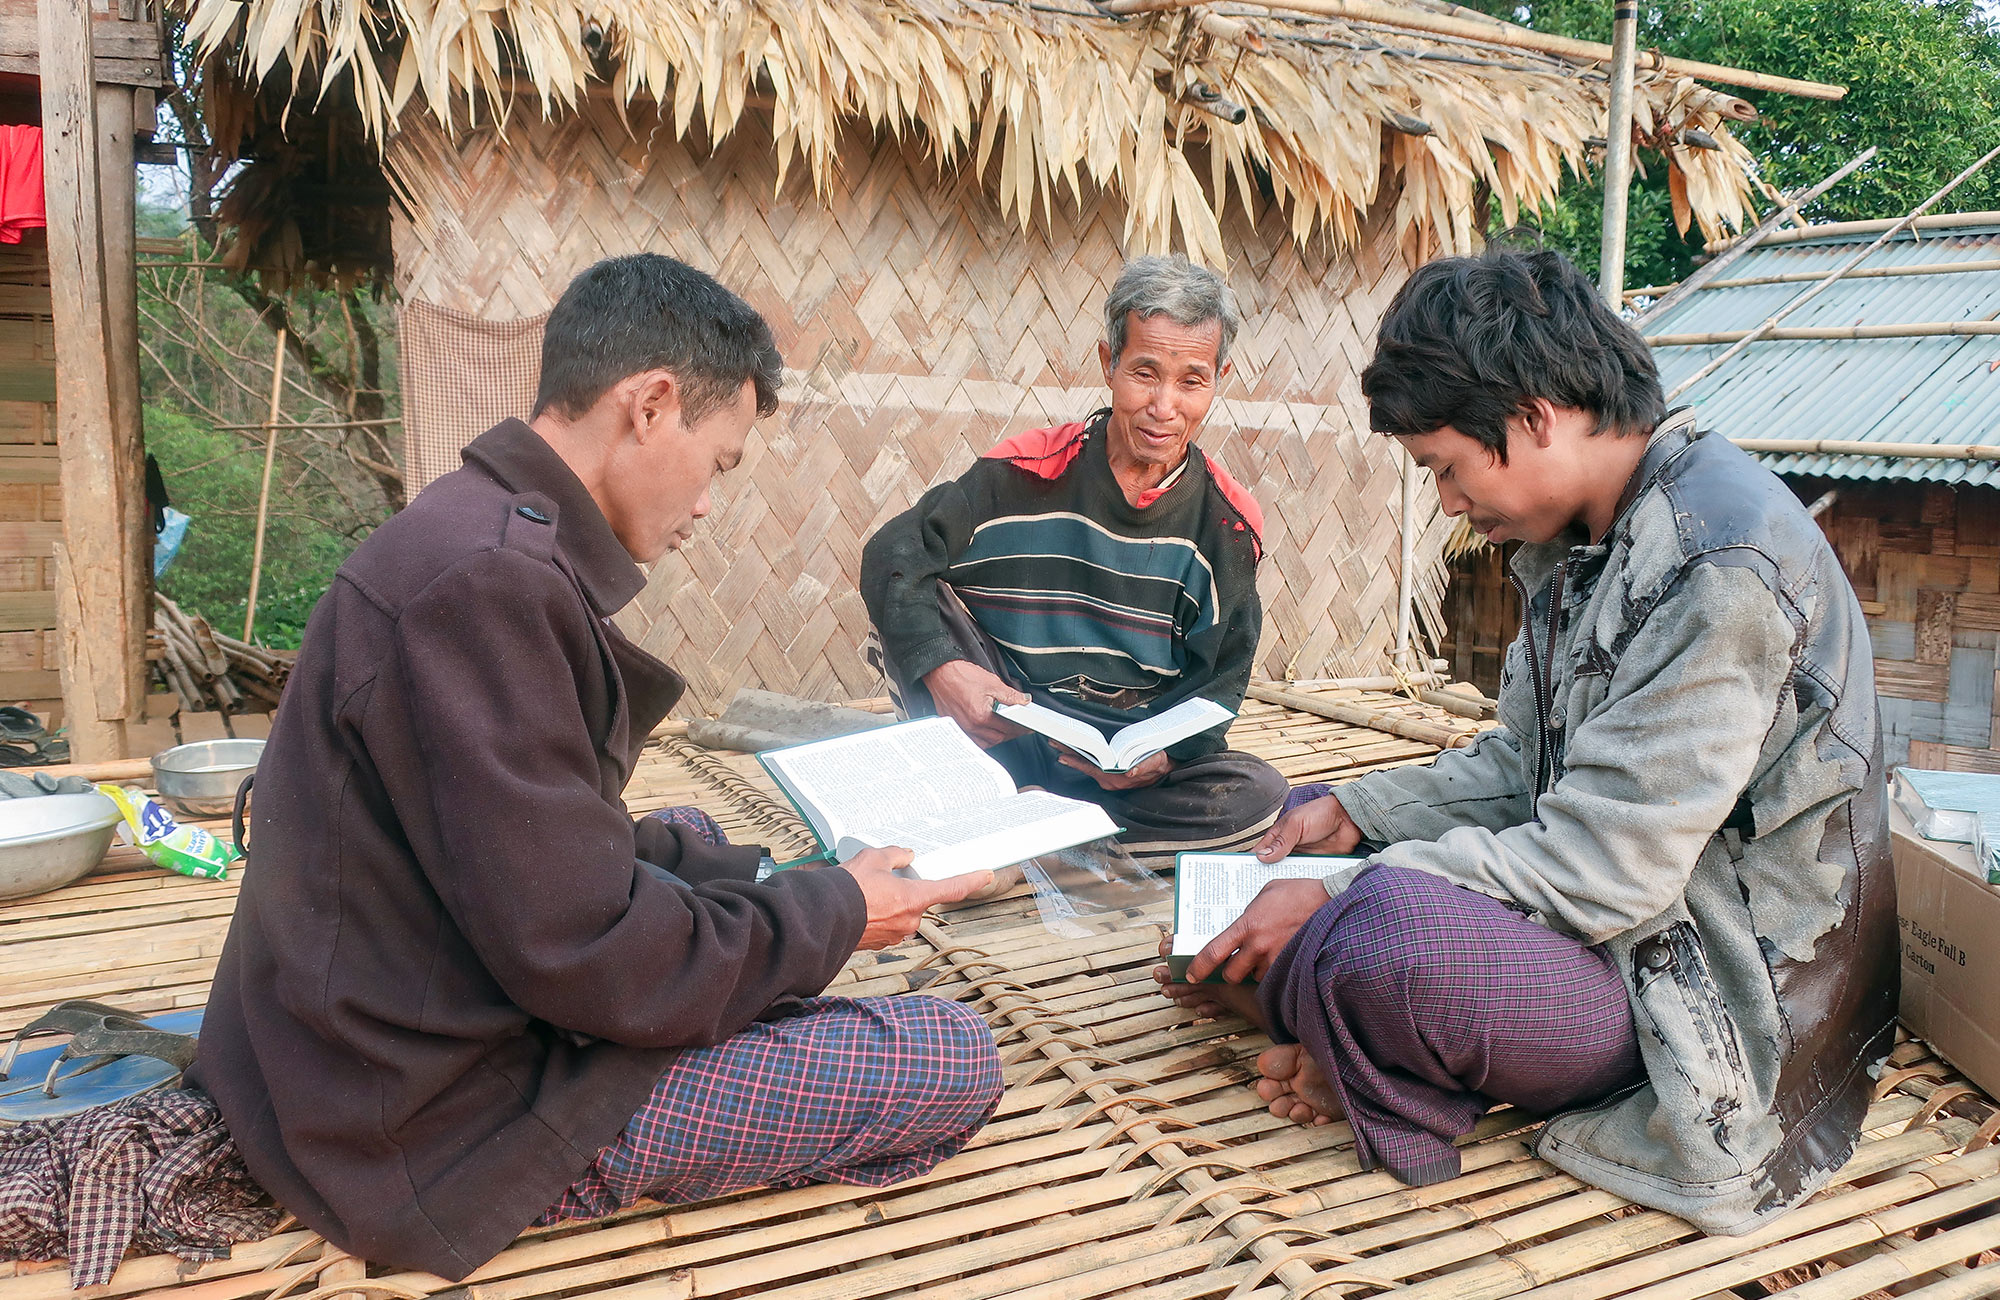 Three men sitting and reading Bibles